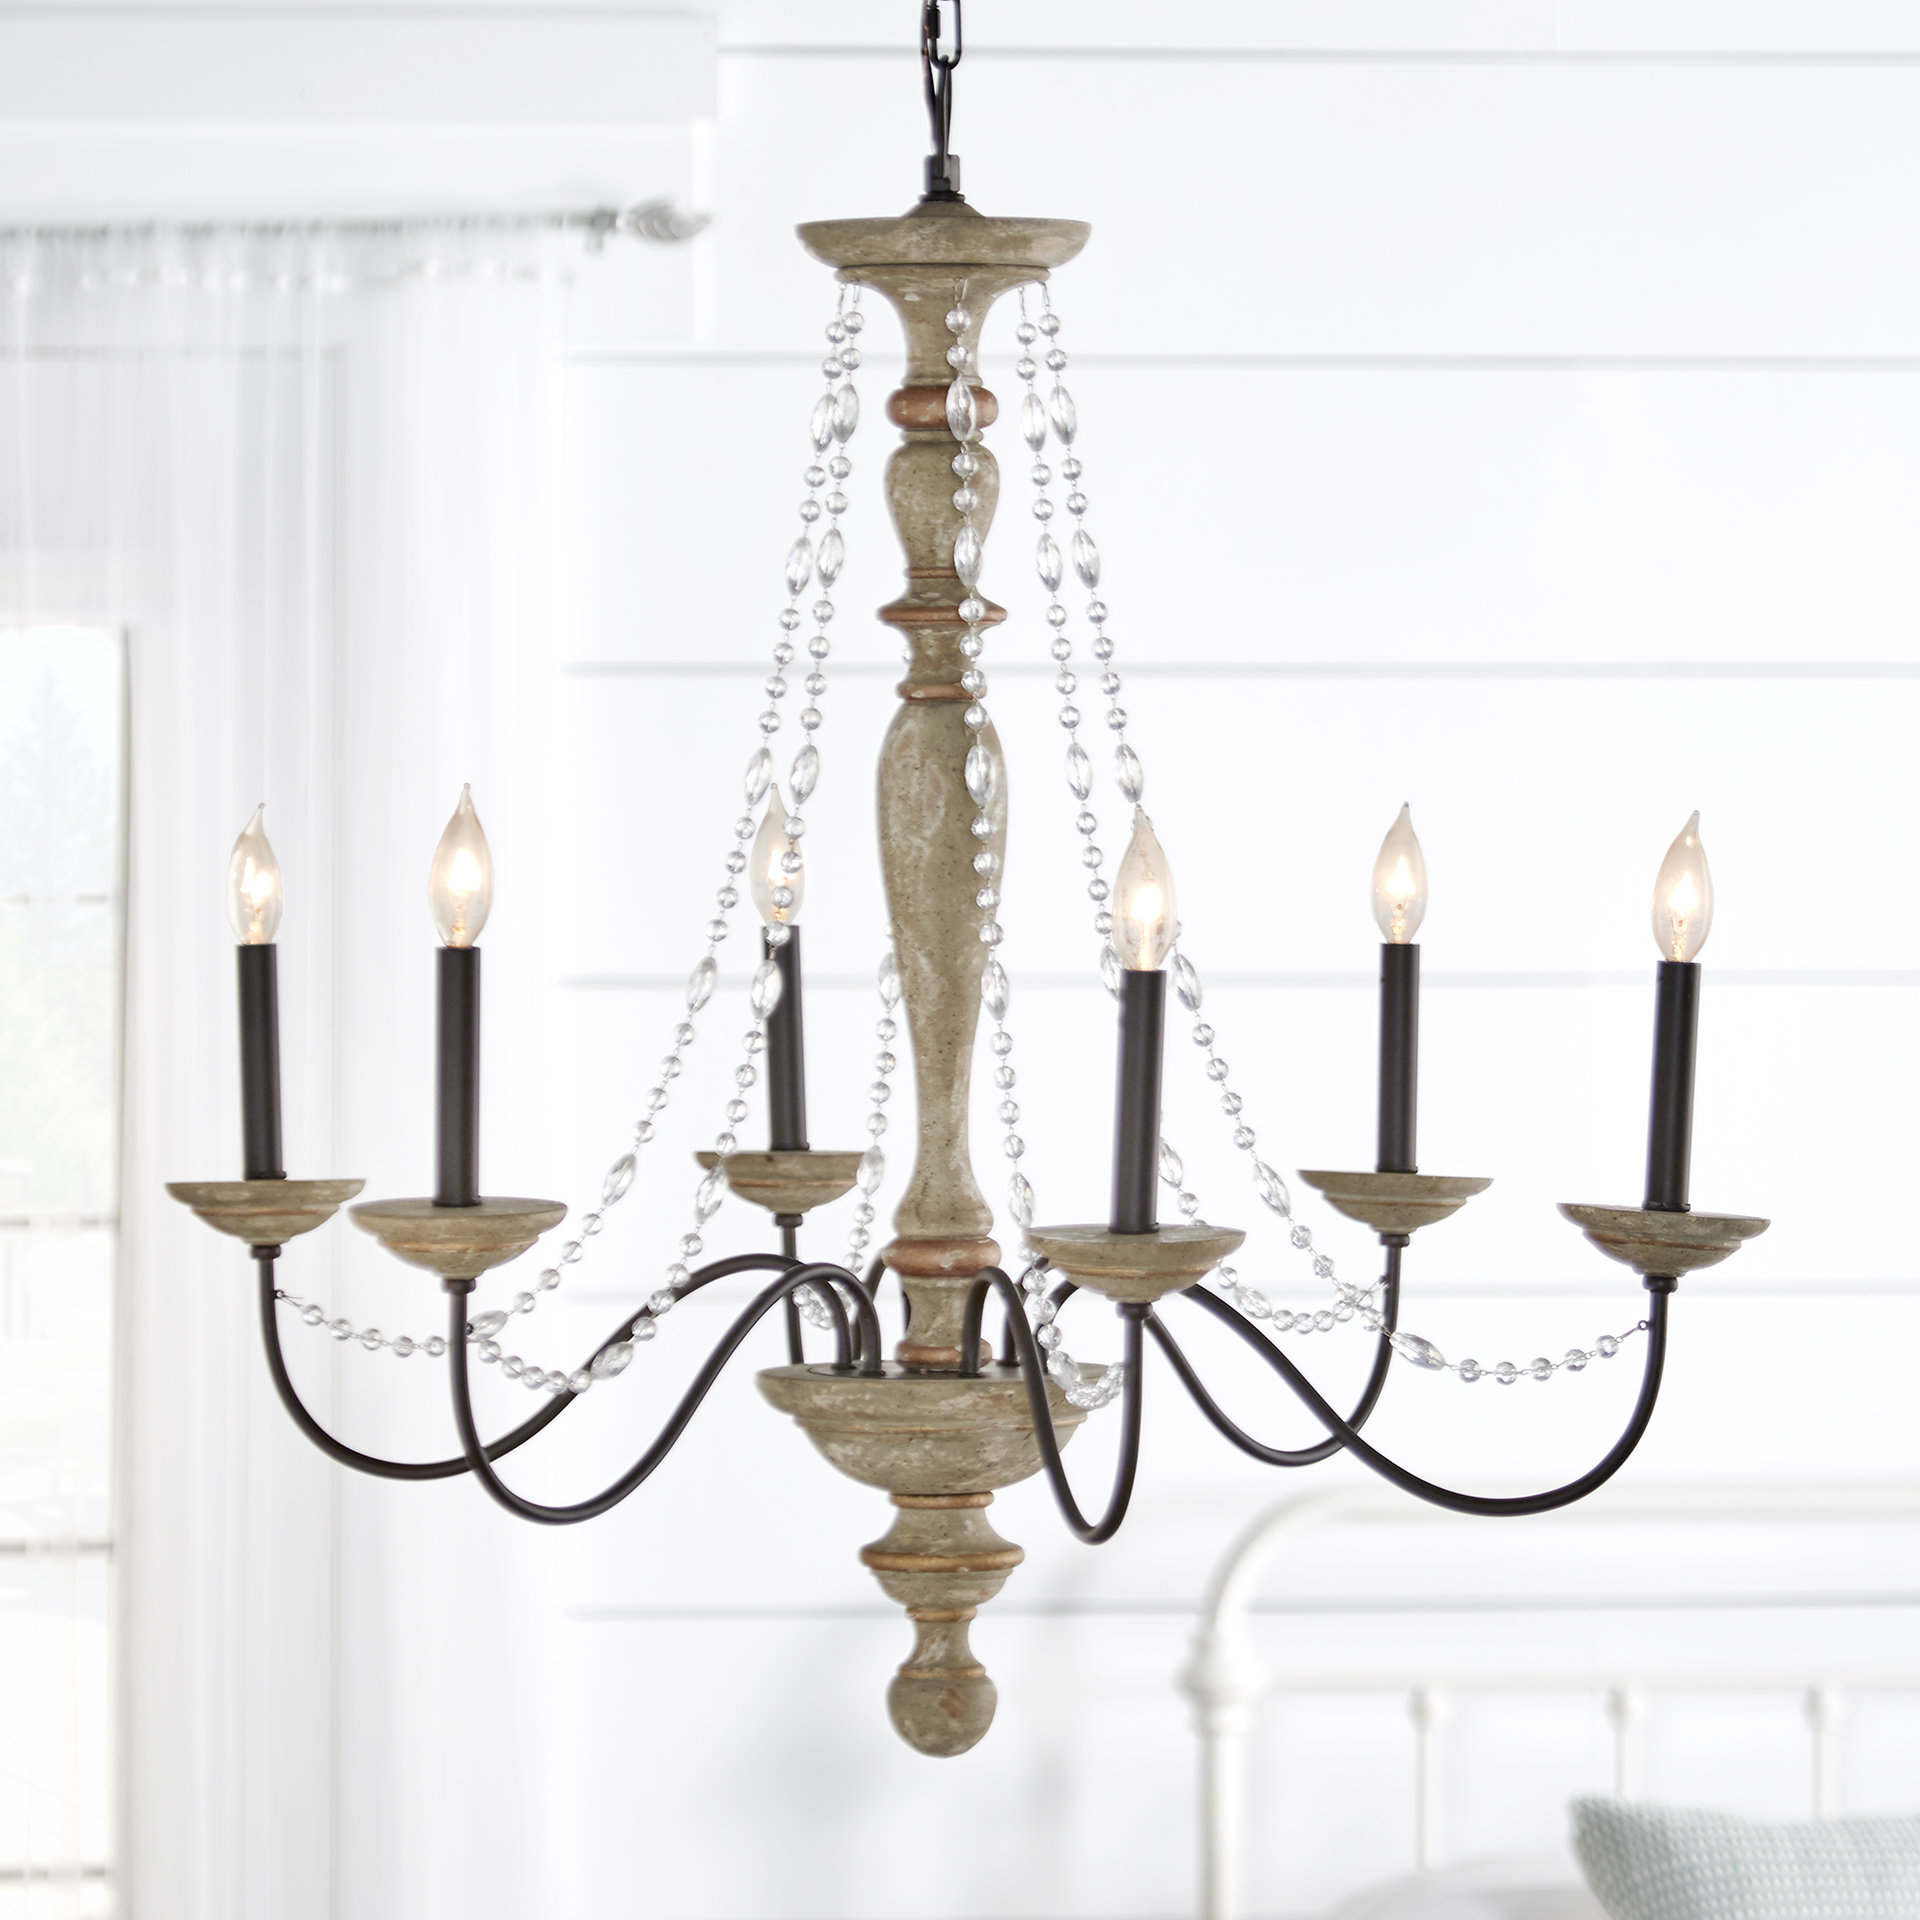 Bouchette Traditional 6 Light Candle Style Chandeliers Pertaining To Current Three Posts Brennon 6 Light Candle Style Chandelier (View 5 of 20)